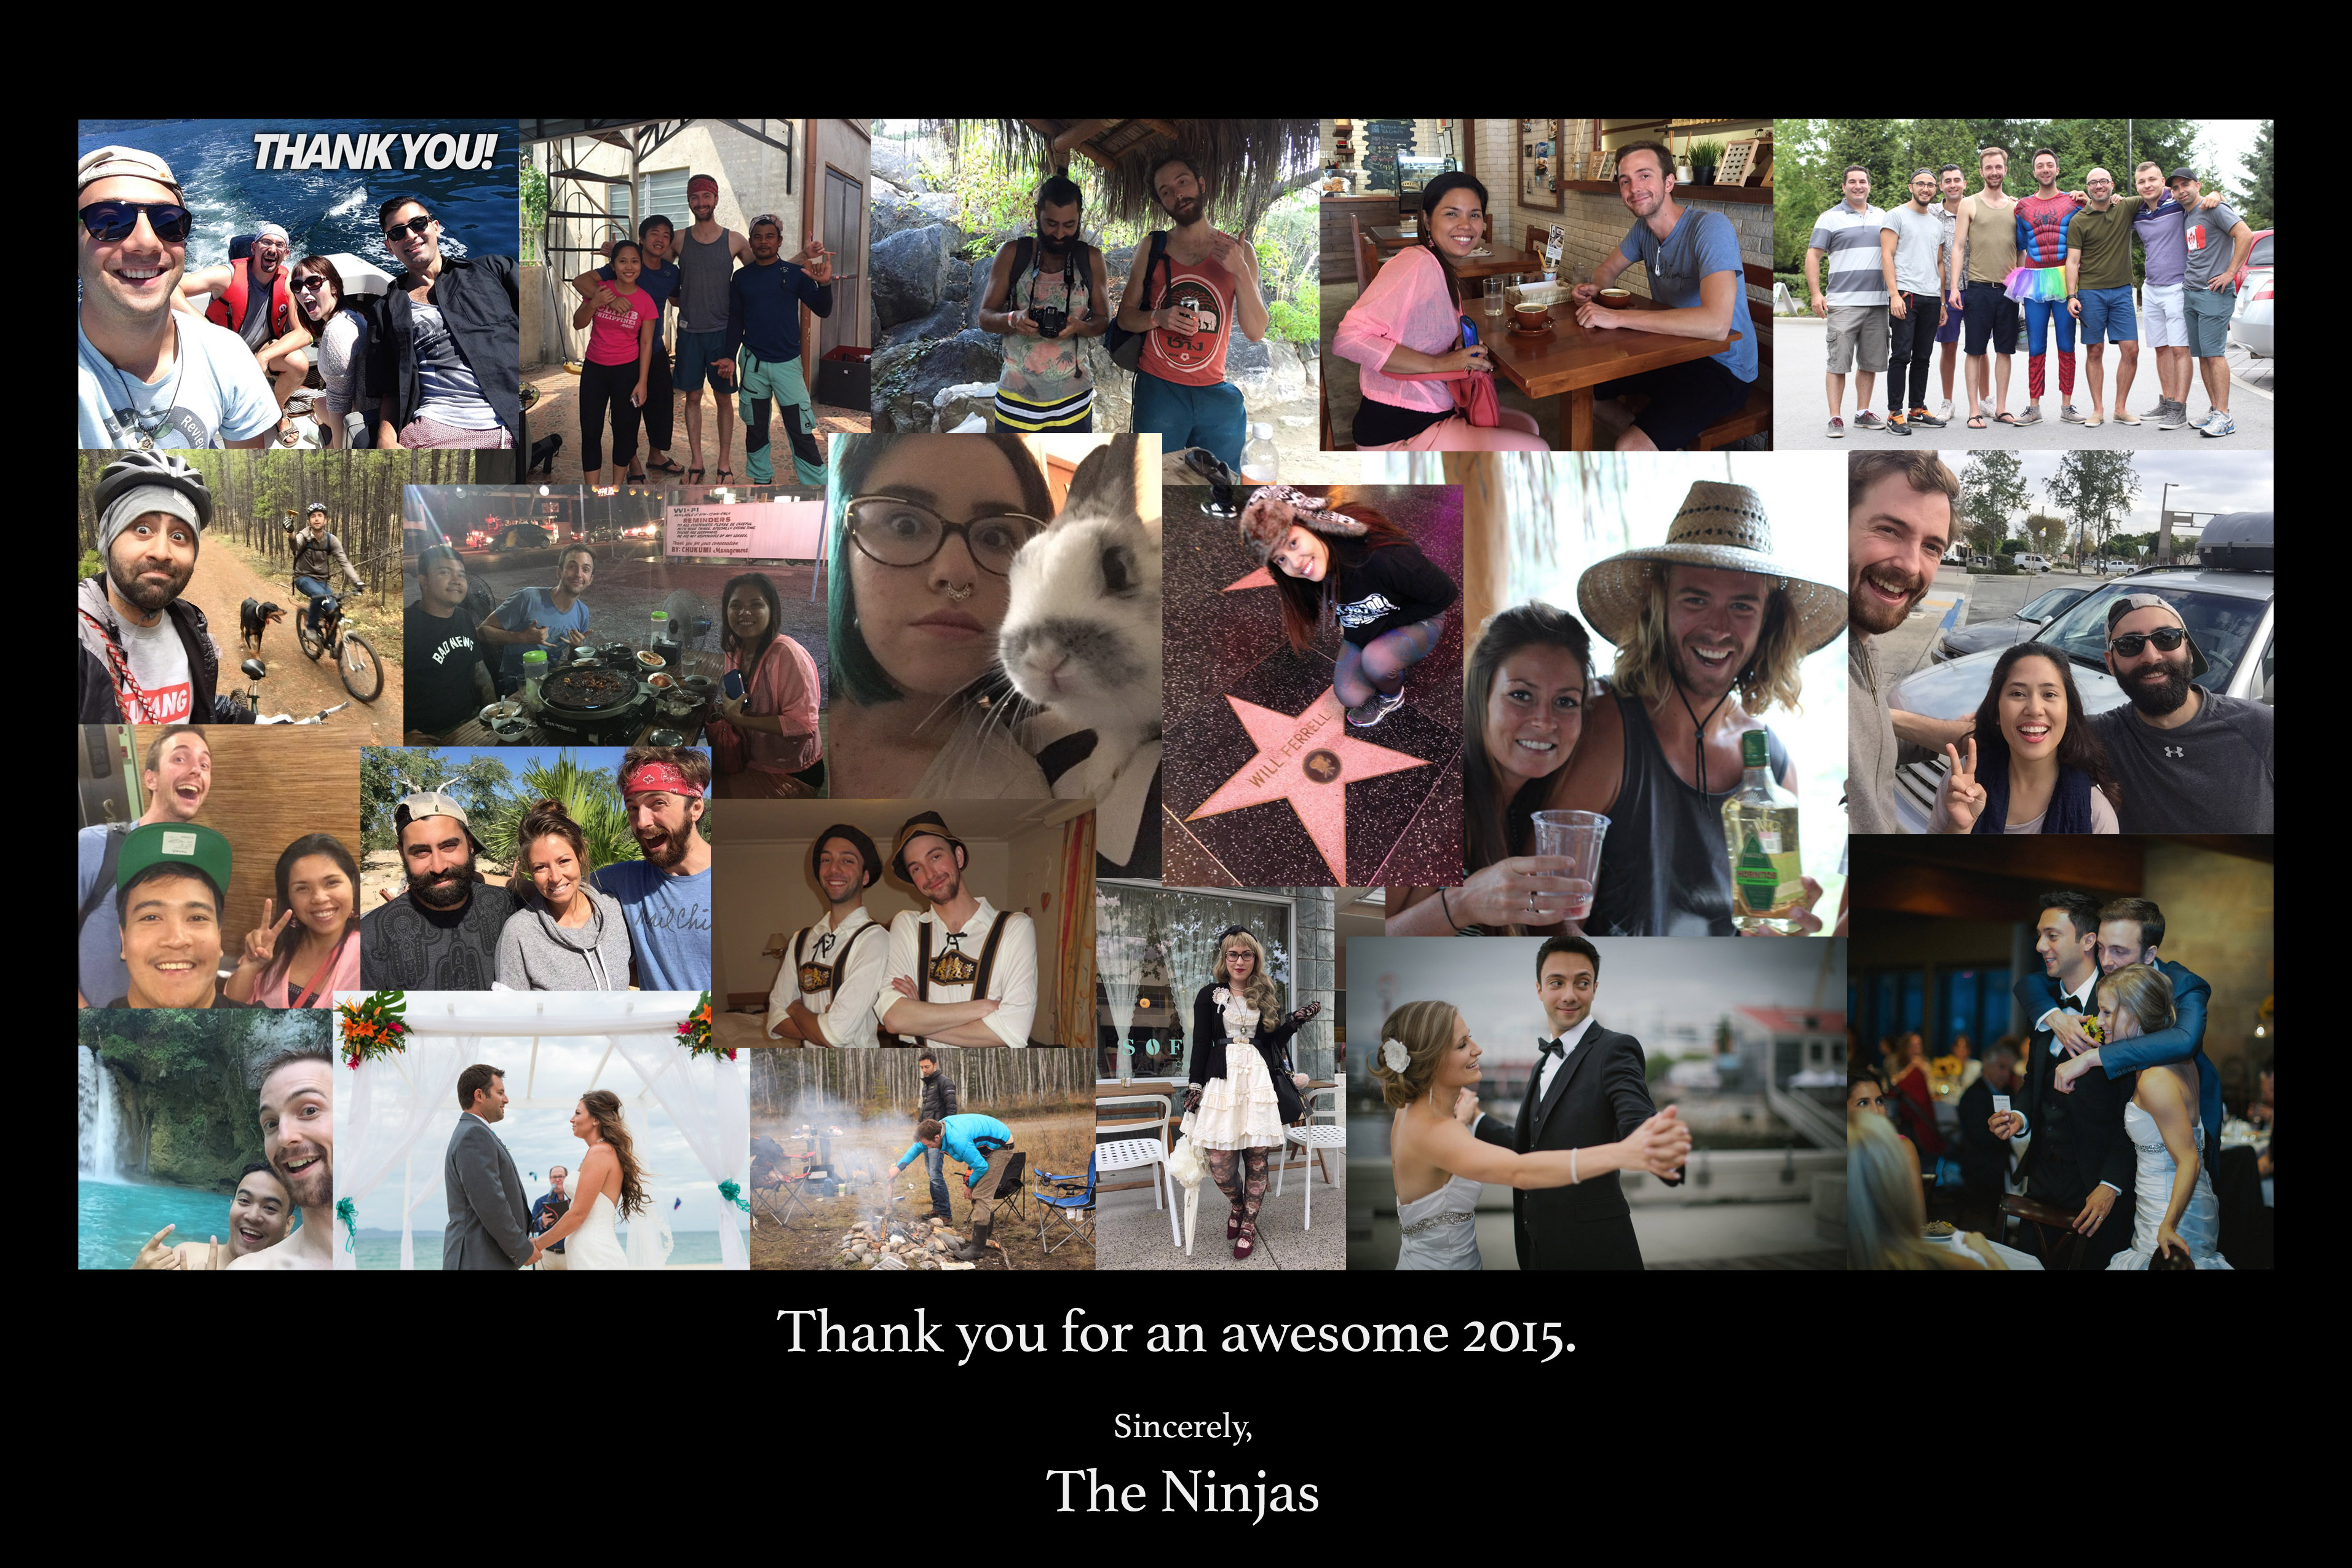 The Ninjas wanted to thank you with this collage from around the world!